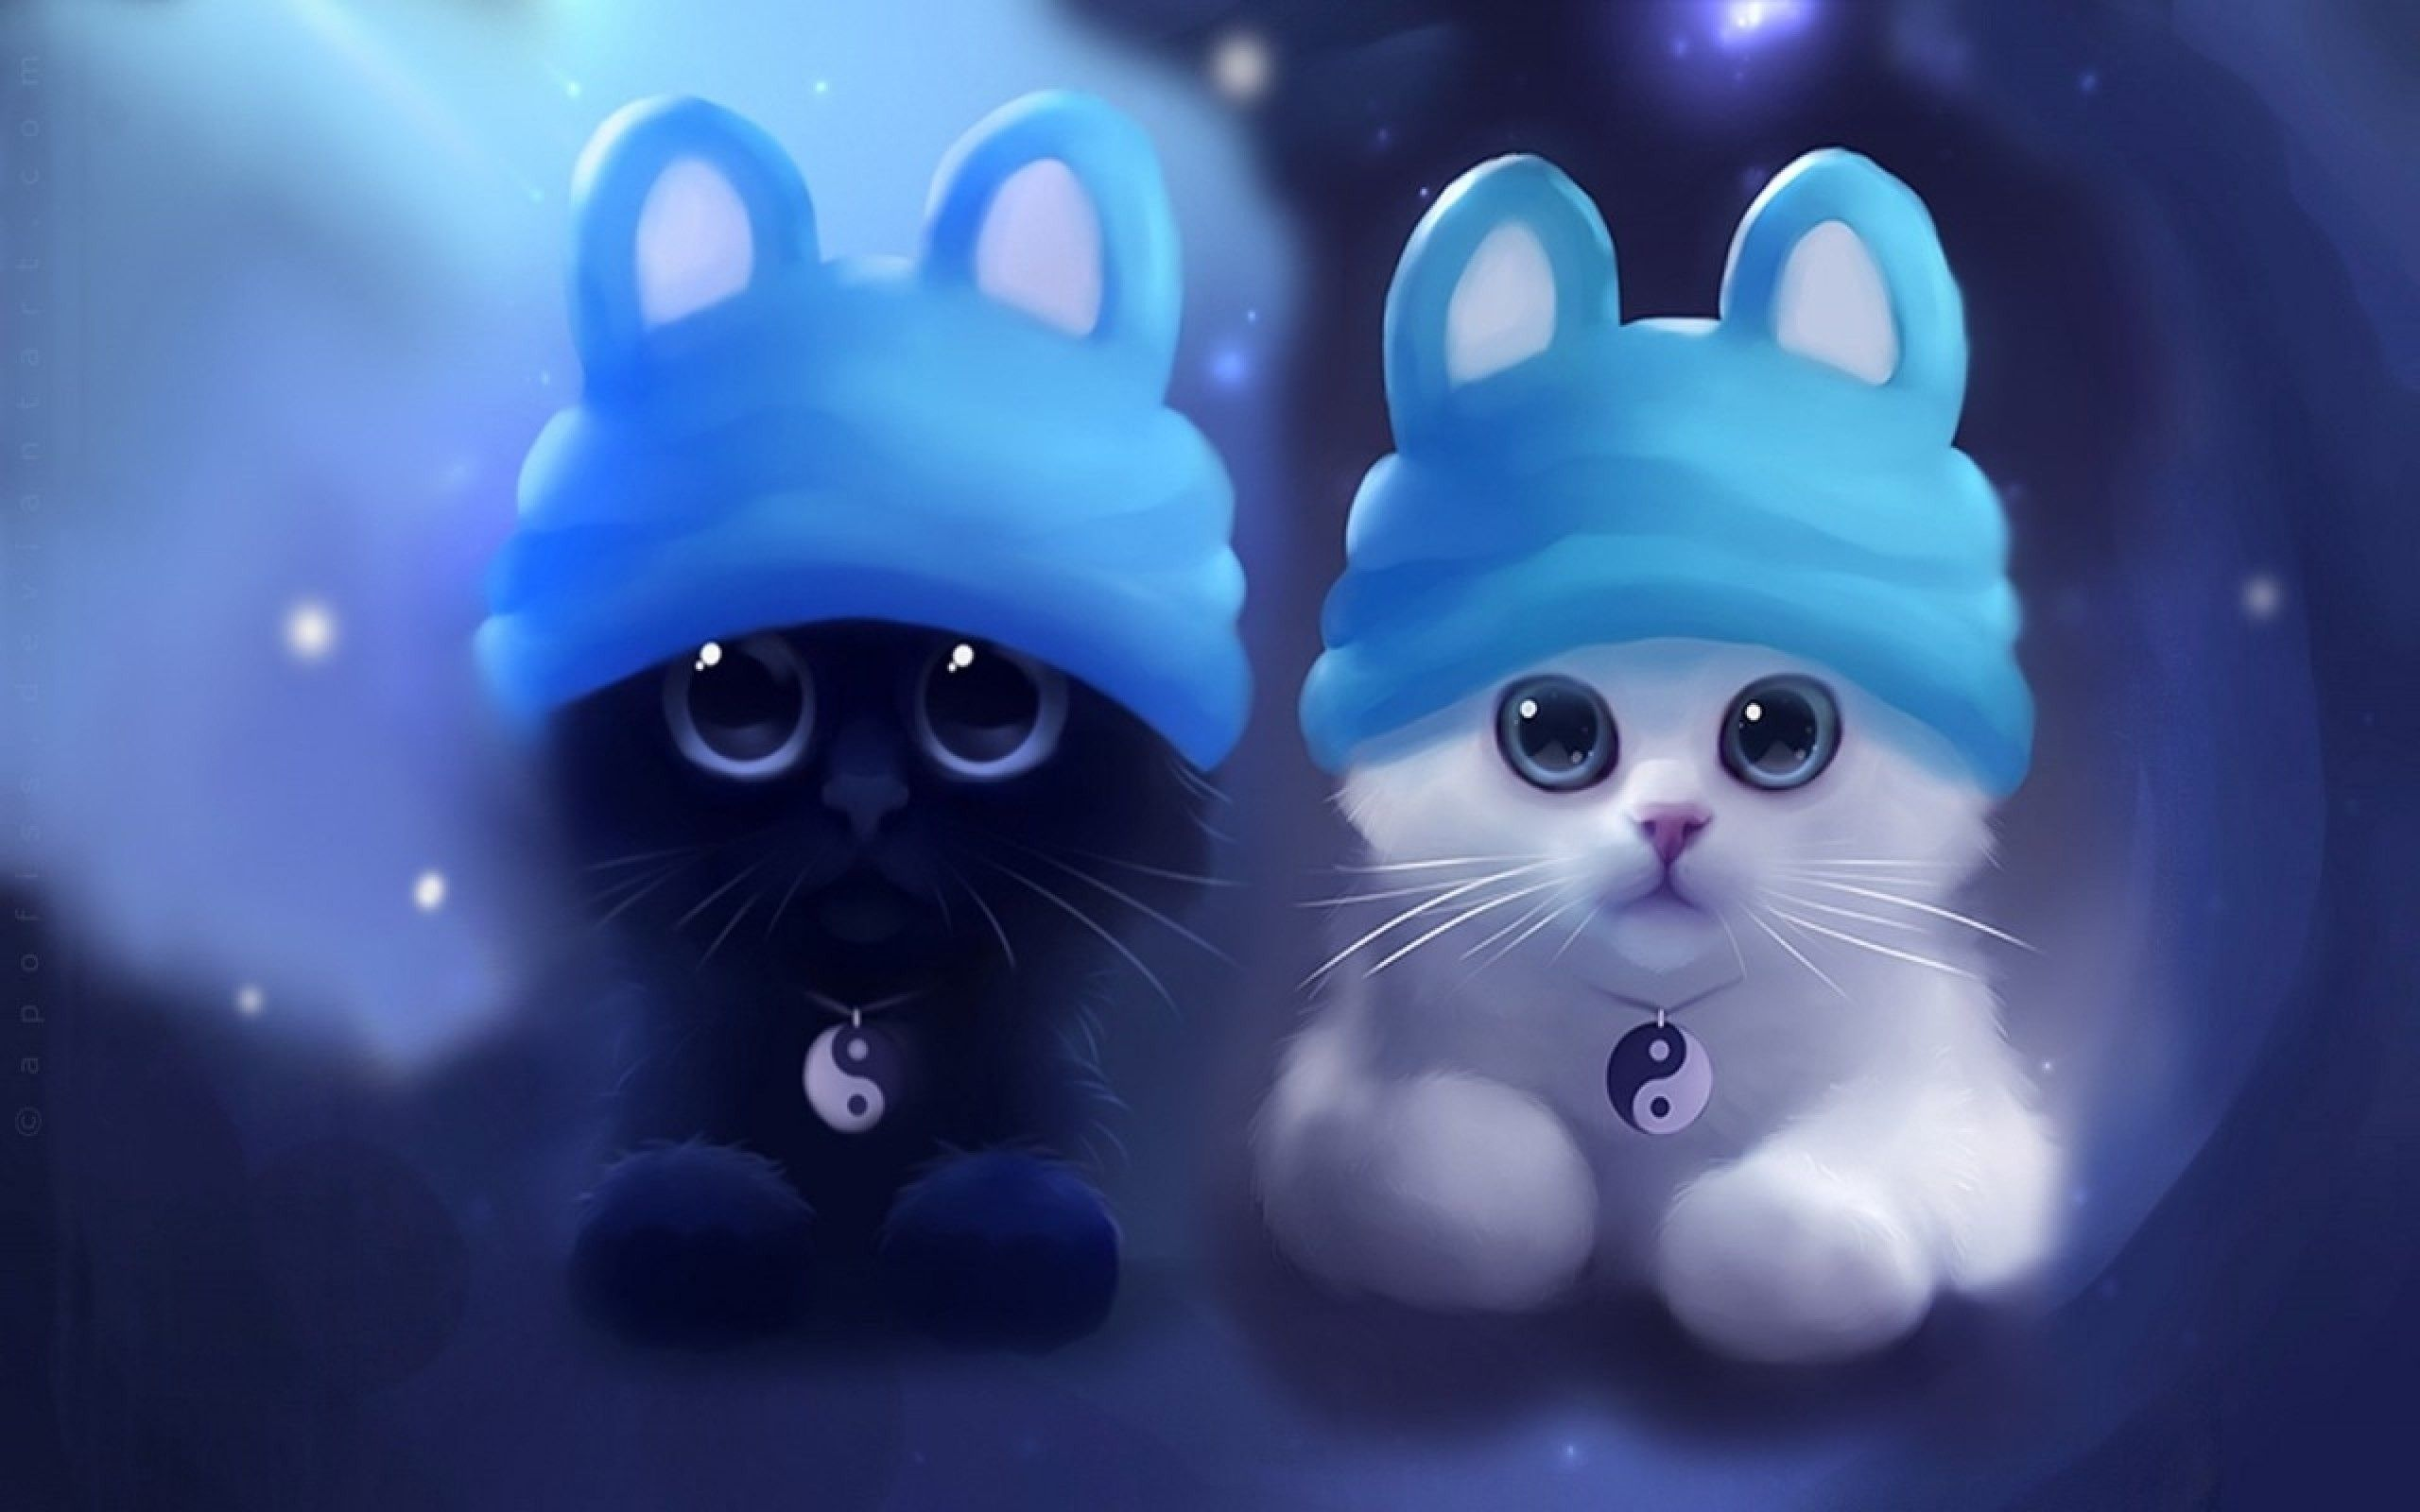 2560x1600 Cute Girly Wallpapers For Desktop Background Cute Girl Wallpaper Cute Wallpapers Cat Wallpaper